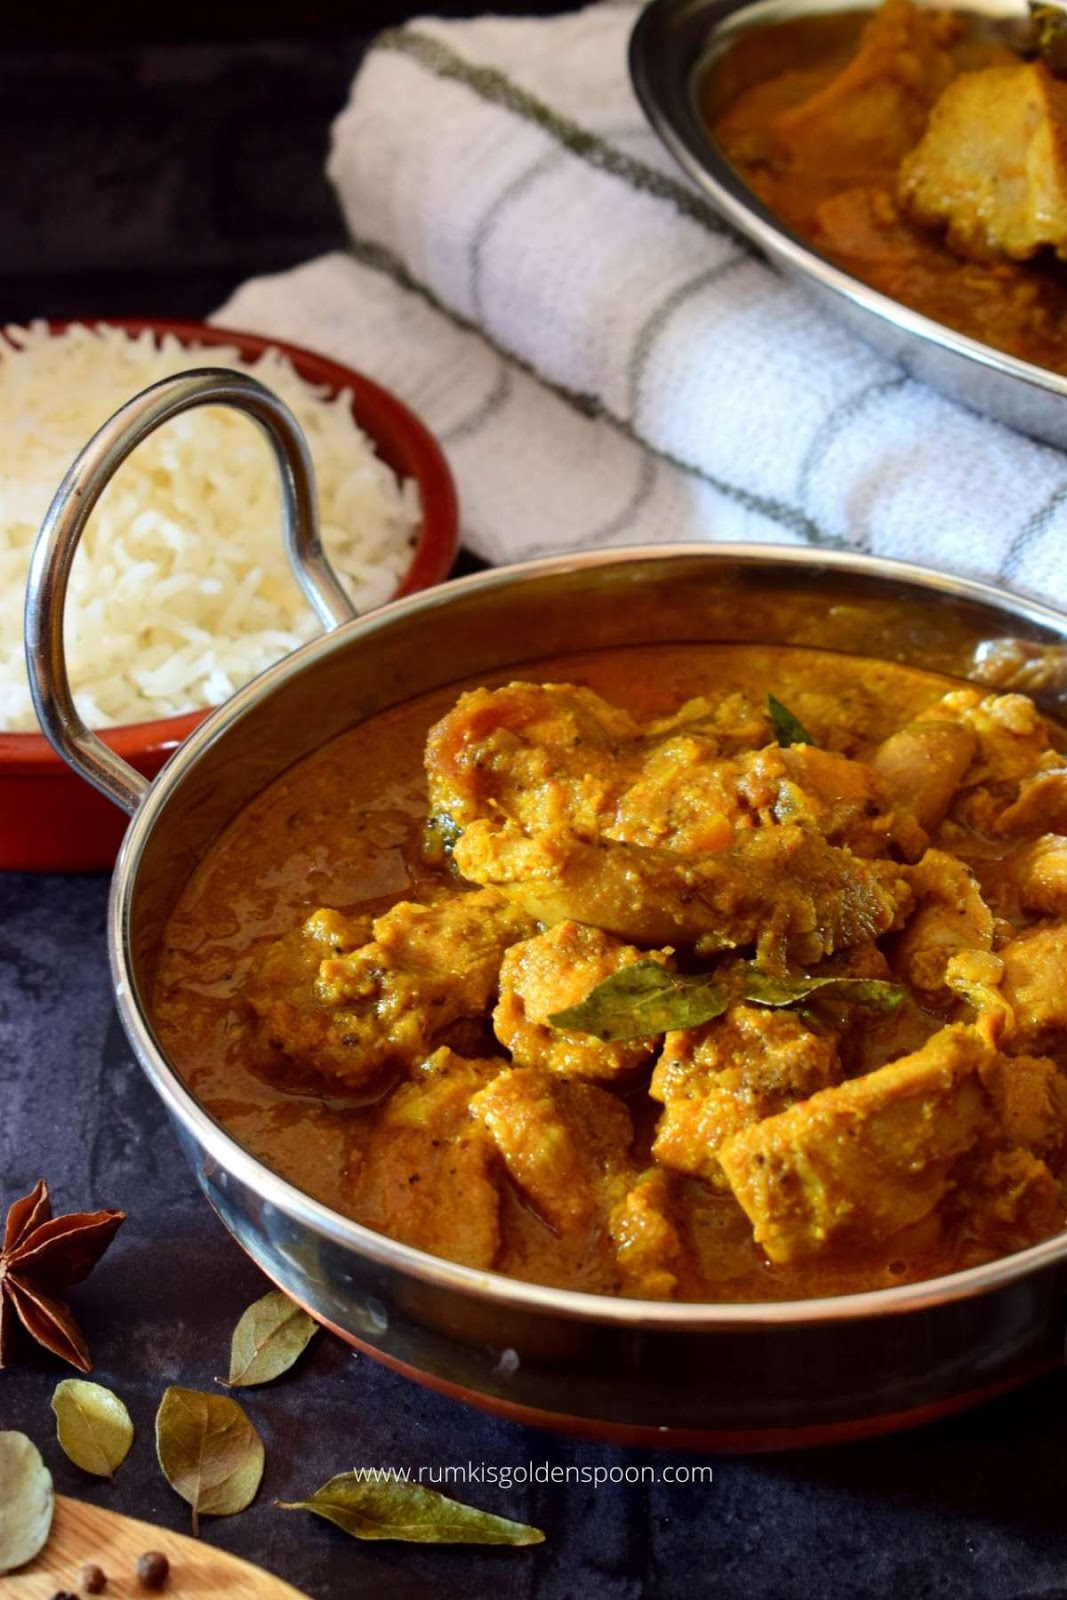 chettinad chicken, chicken chettinad, chicken chettinad recipe, chettinad chicken recipe, recipe for chettinad chicken, chettinad chicken gravy, chicken chettinad gravy, chettinad chicken curry, chicken chettinad curry, chettinad chicken curry recipe, recipe for chettinad chicken curry, recipe of chettinad chicken curry, recipe for chettinad chicken gravy, chettinad chicken gravy recipe, how to make chettinad chicken, how to make chettinad chicken curry, recipe of south indian chicken curry, recipe for south indian chicken curry, south indian chicken curry recipe, south indian style chicken curry, Indian chicken curry recipe, recipe for spicy chicken curry, recipe for Indian chicken curry, south Indian cuisine, chicken curry recipe, chicken curry recipe Indian, best chicken curry recipe, the best chicken curry recipe, recipe for chicken curry, chicken with curry recipe, recipe of Indian chicken curry, Rumki's Golden Spoon